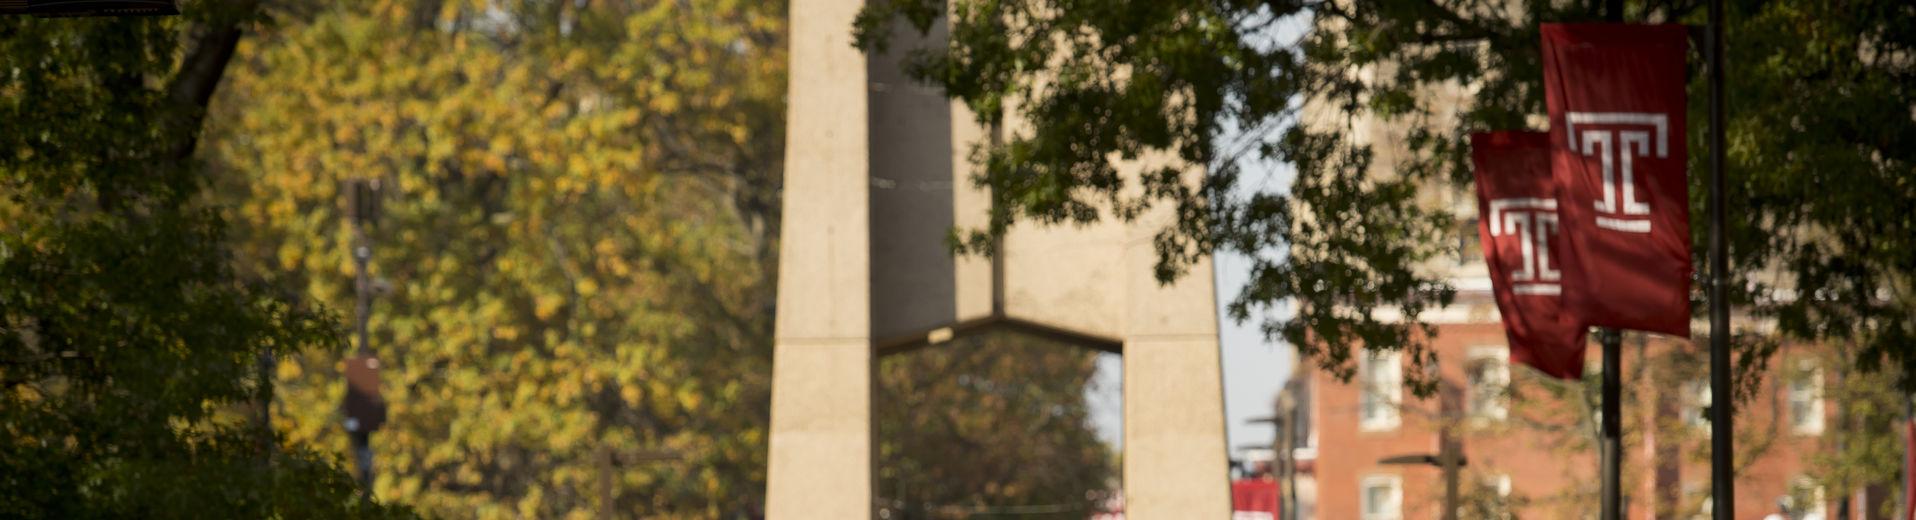 Students walking during class change under bell tower